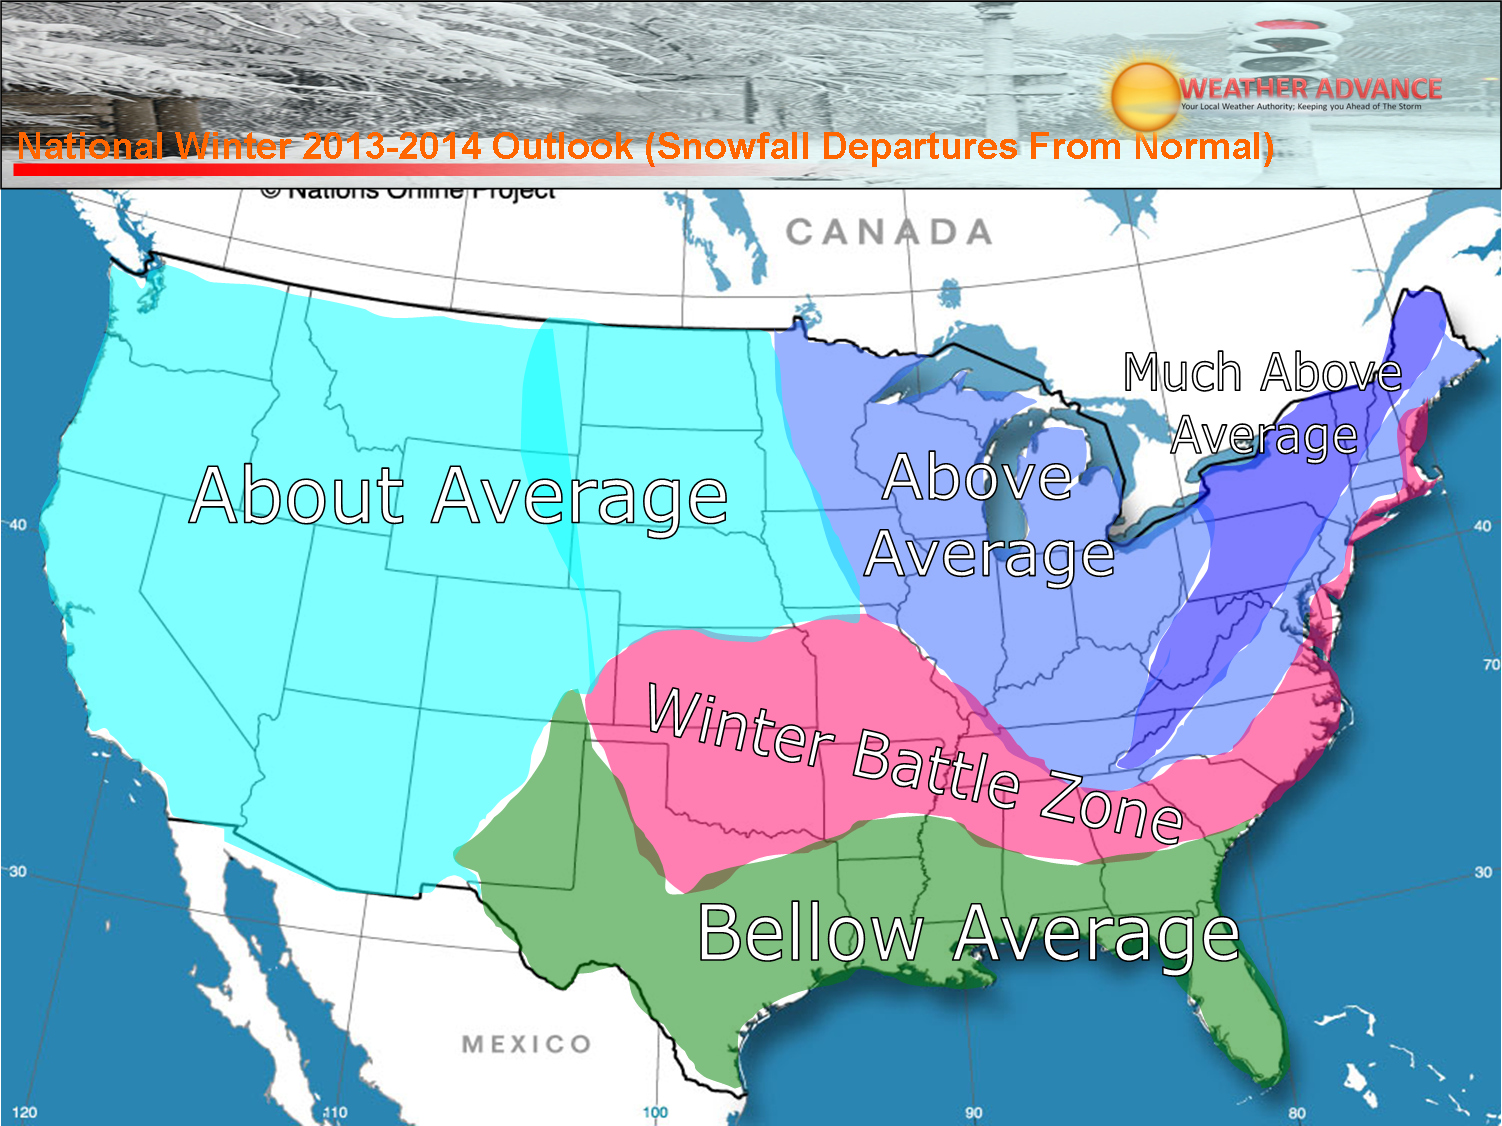 USA Winter Weather Forecast For From WeatherAdvancecom - Average snowfall map us